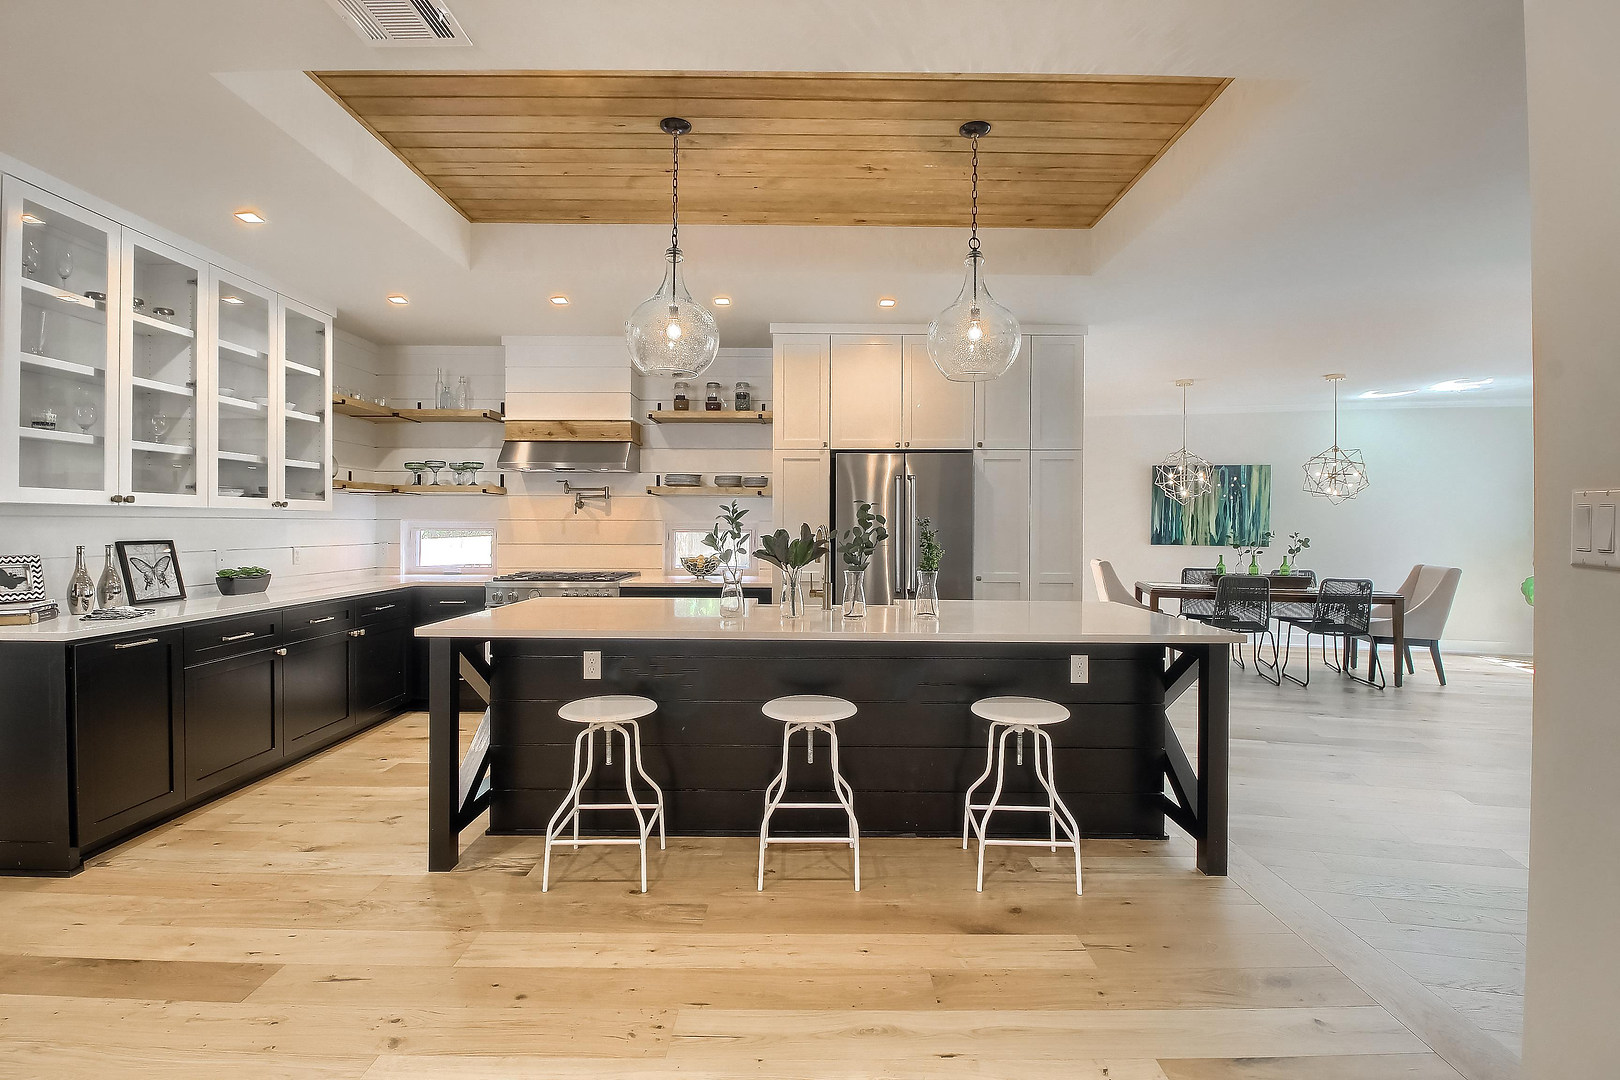 Home Renovation Kitchen Features on West 29th in Austin, Texas